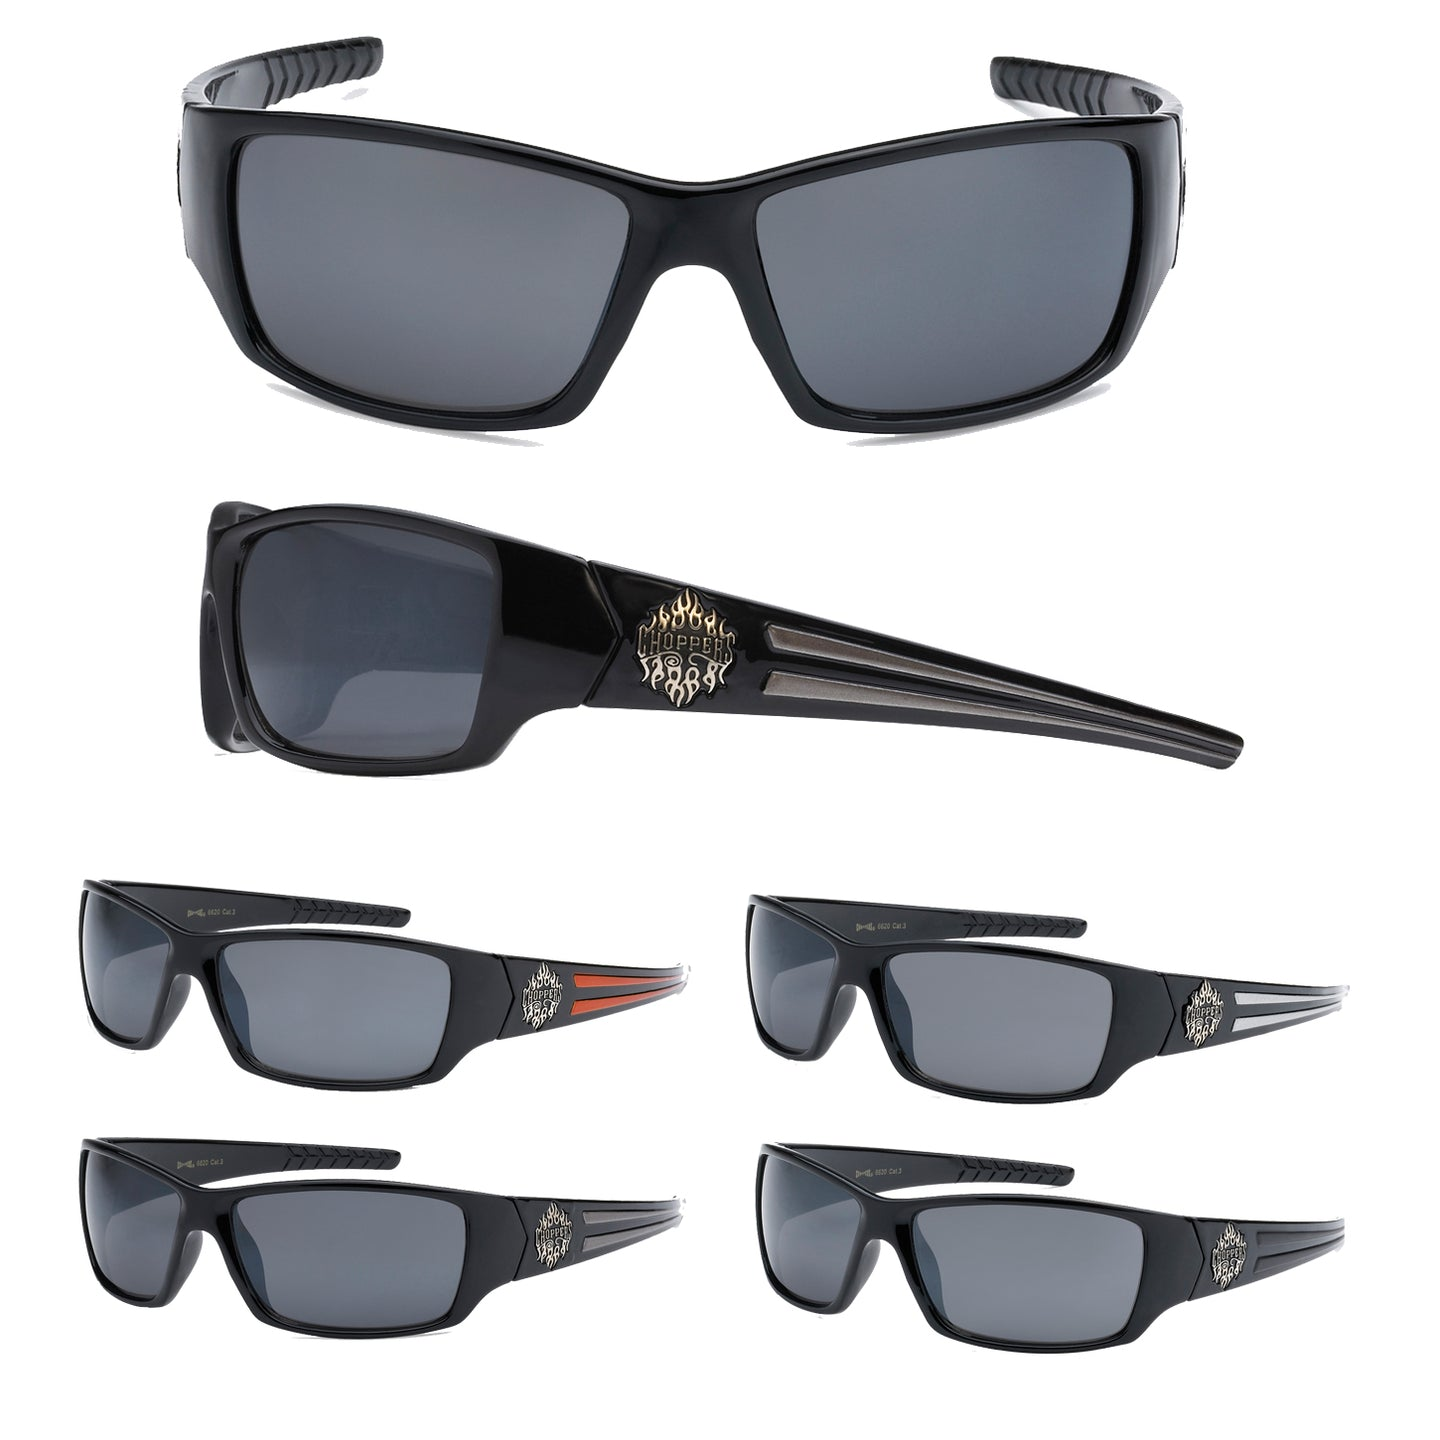 Men's Wholesale Biker Chopper Plastic Sunglasses 1 Dozen - BuyWholesaleSunglasses.com